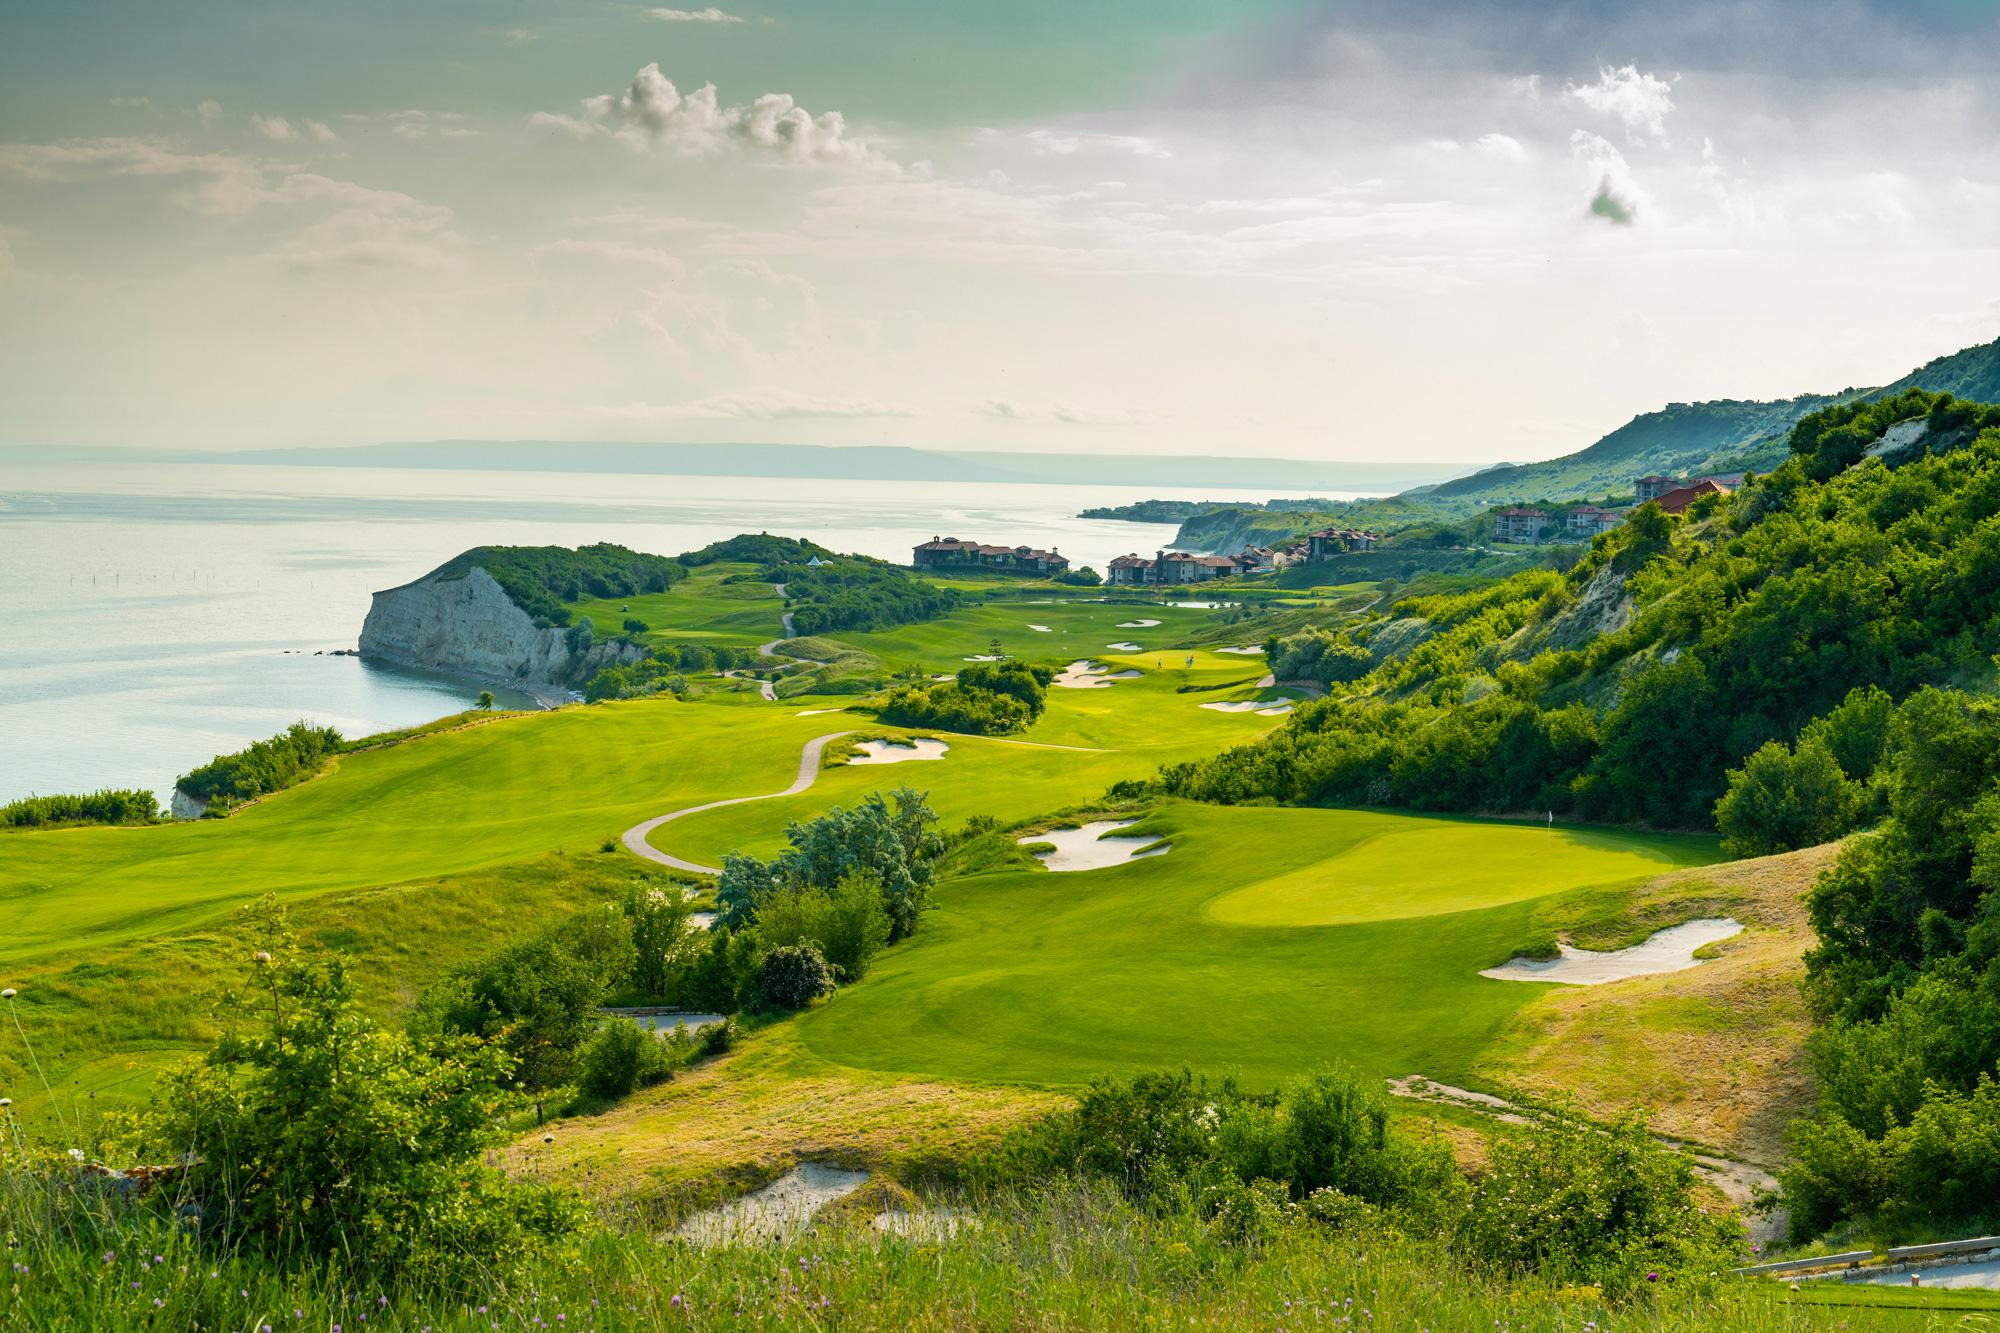 View Thracian Cliffs Golf Club's lovely golf course within dramatic Black Sea Coast.